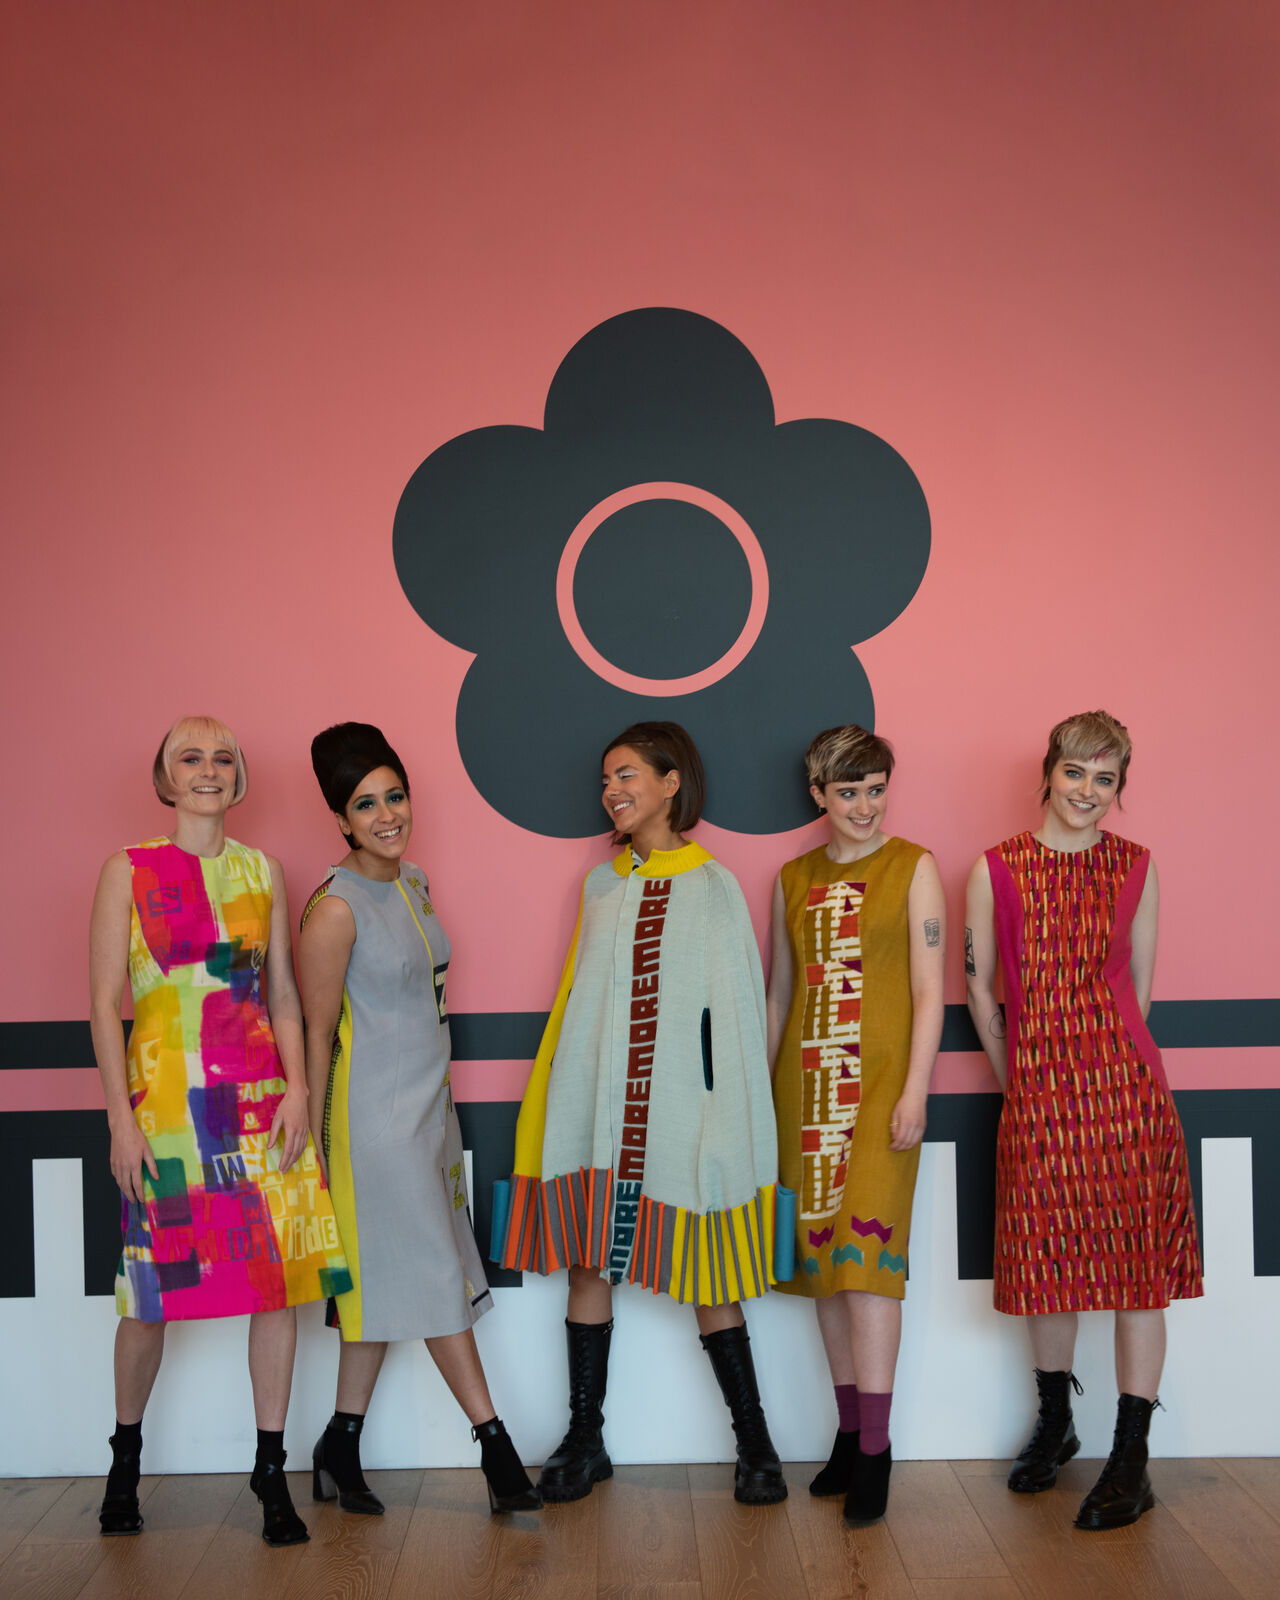 Five models wearing a range of Quant-inspired garments in bright colours. They are photographed in front of the Quant Daisy logo.